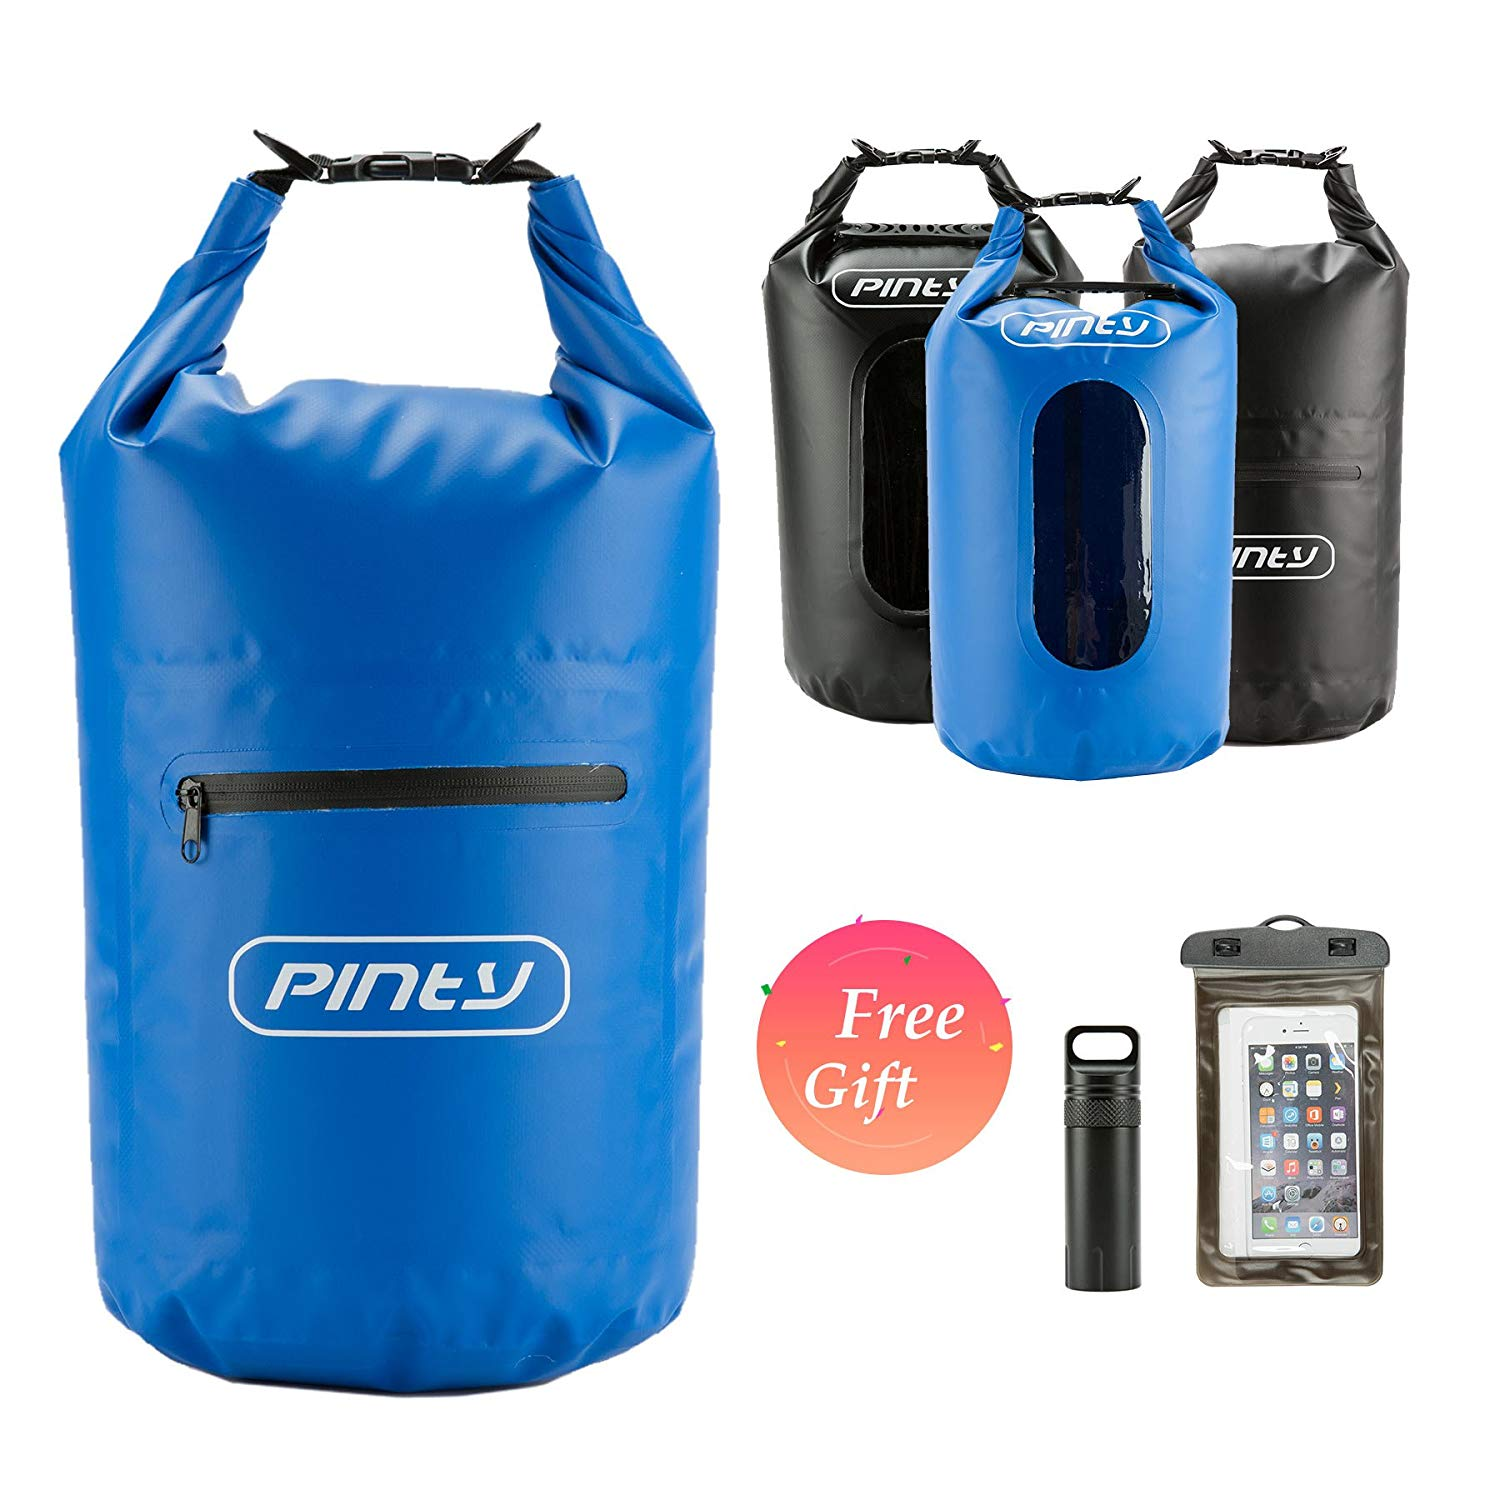 Pinty 20L Waterproof Dry Bag for Watersports, Floating Dry Sack for Kayaking, Beach, Rafting, Boating, Swimming, Camping, Fishing, Watertight Backpack with Waterproof Cellphone Bag